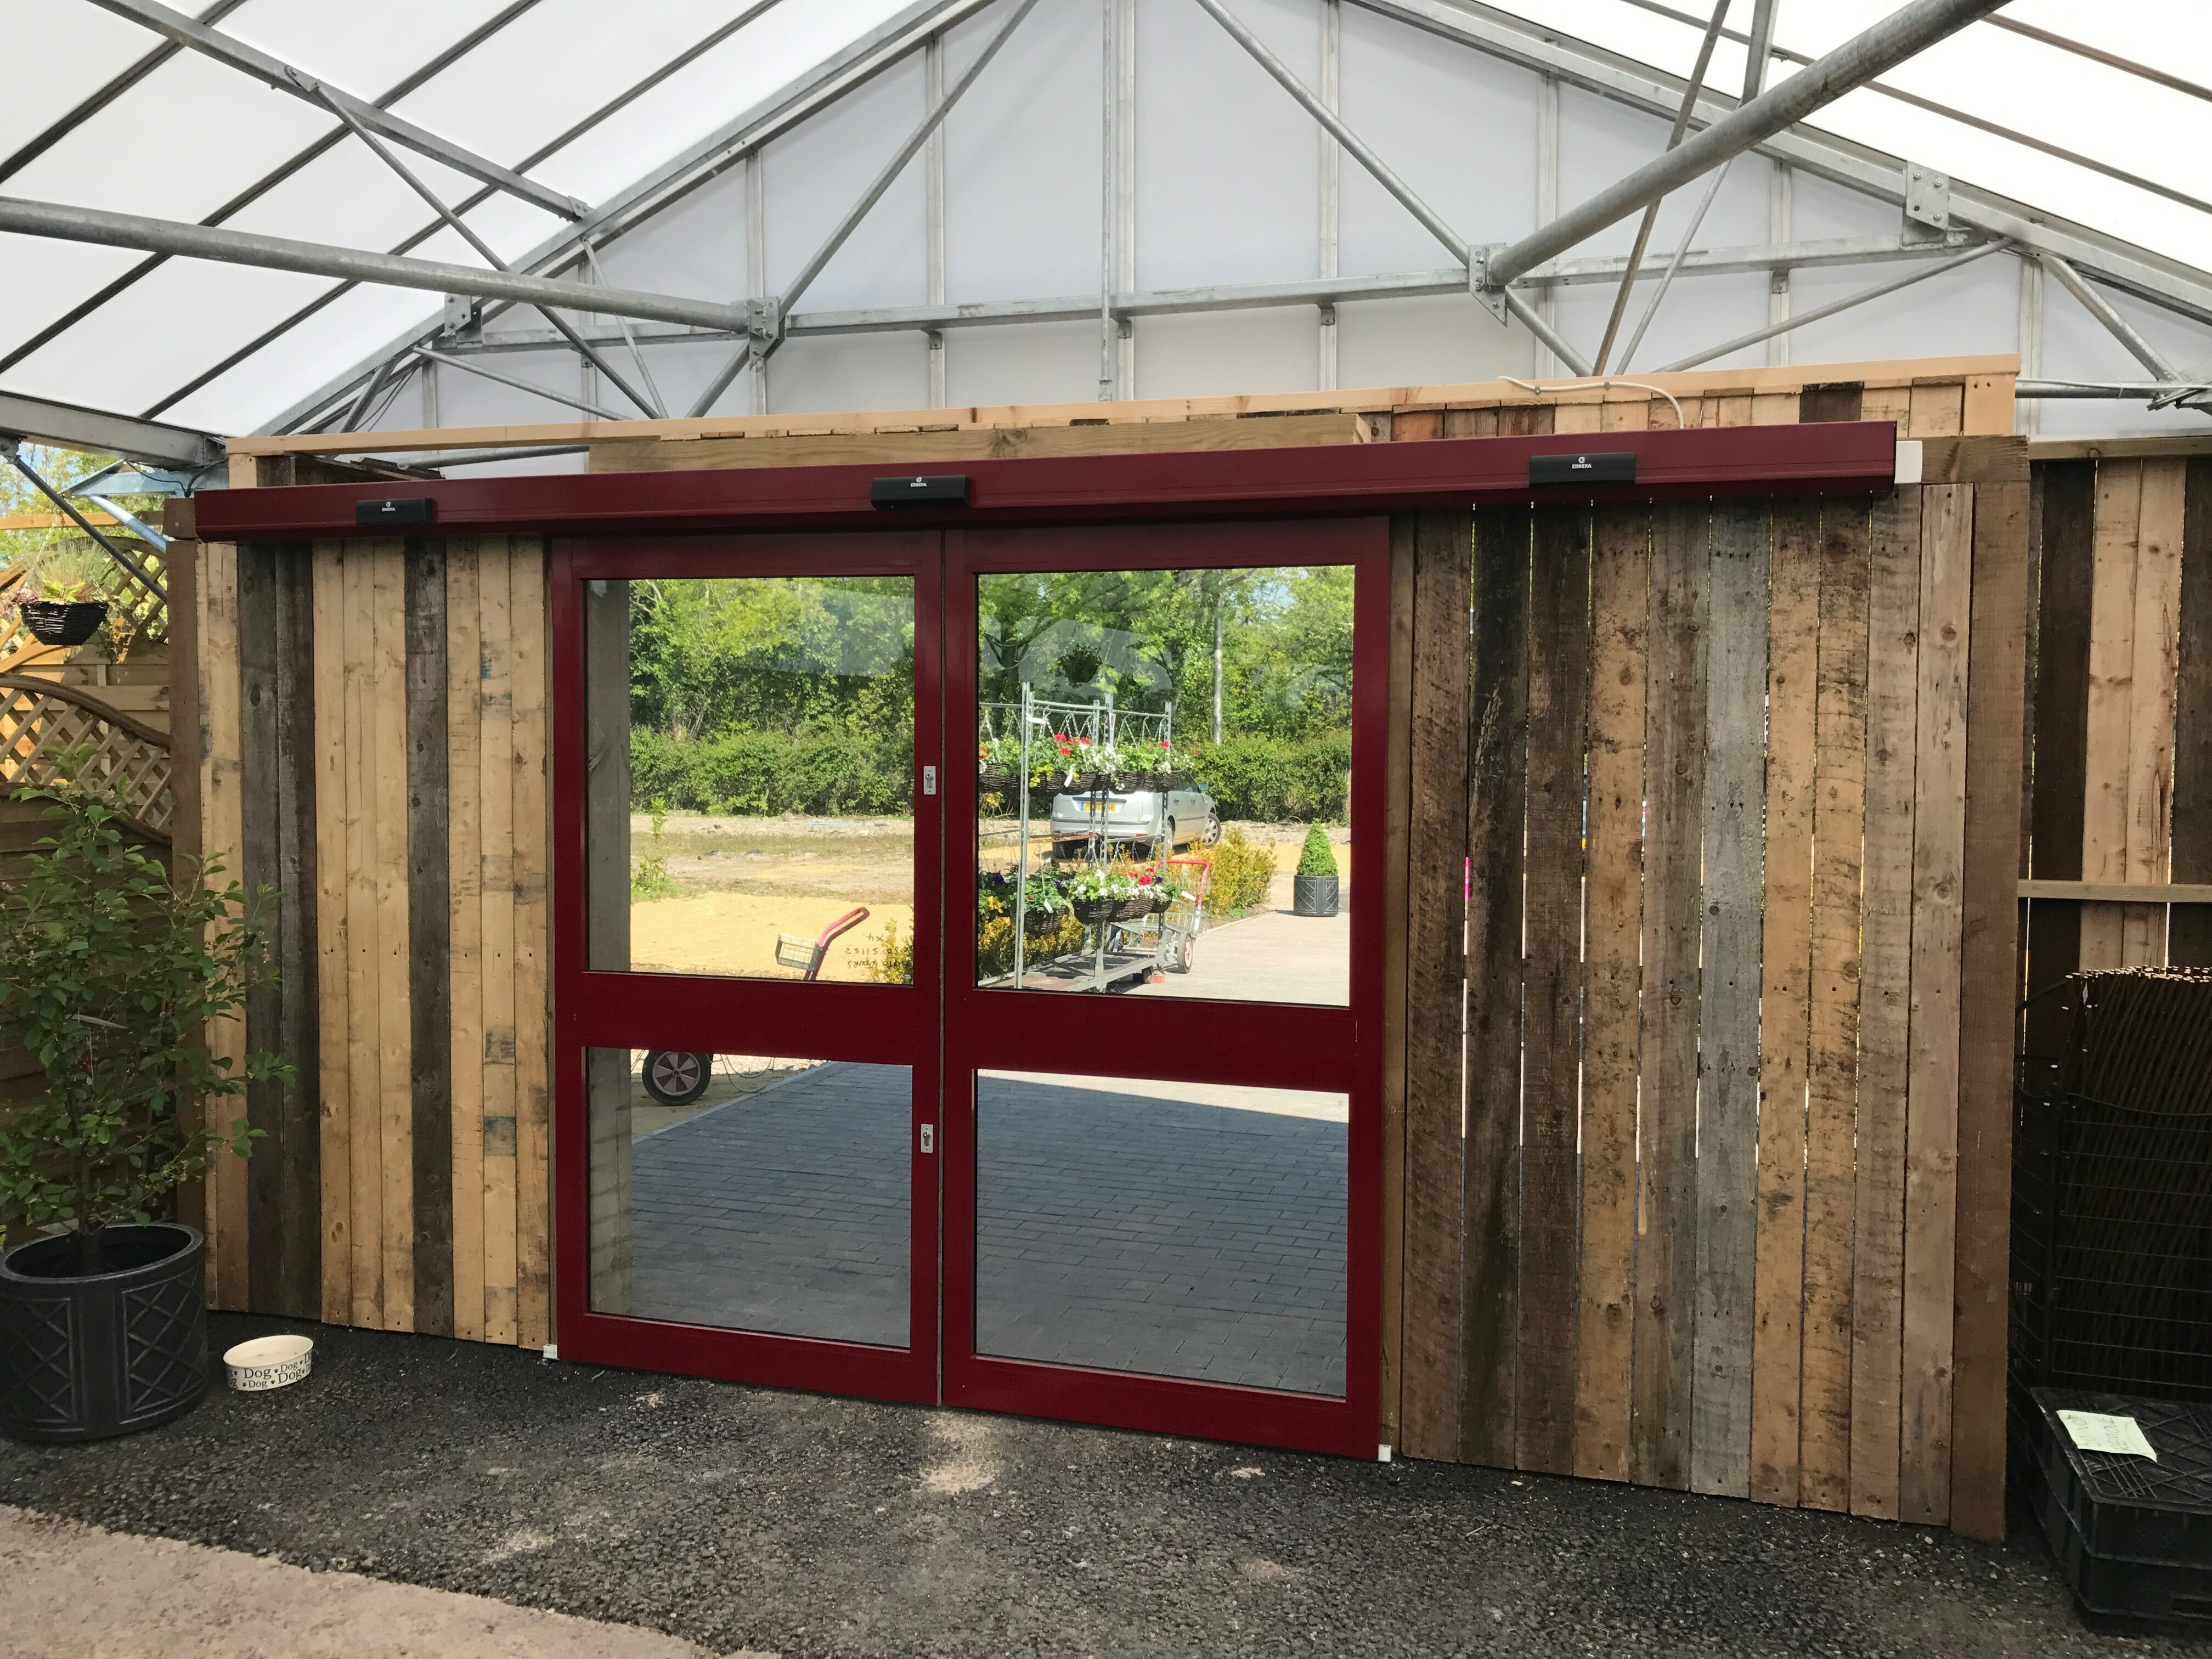 Given all the information and objectives set out by the Garden Centre we recommended that we install Automatic Doors (Bi Part Sliding) Entrance Screen. & Case Study: Garden Centre: Automatic Doors - ERREKA Automatic ... pezcame.com